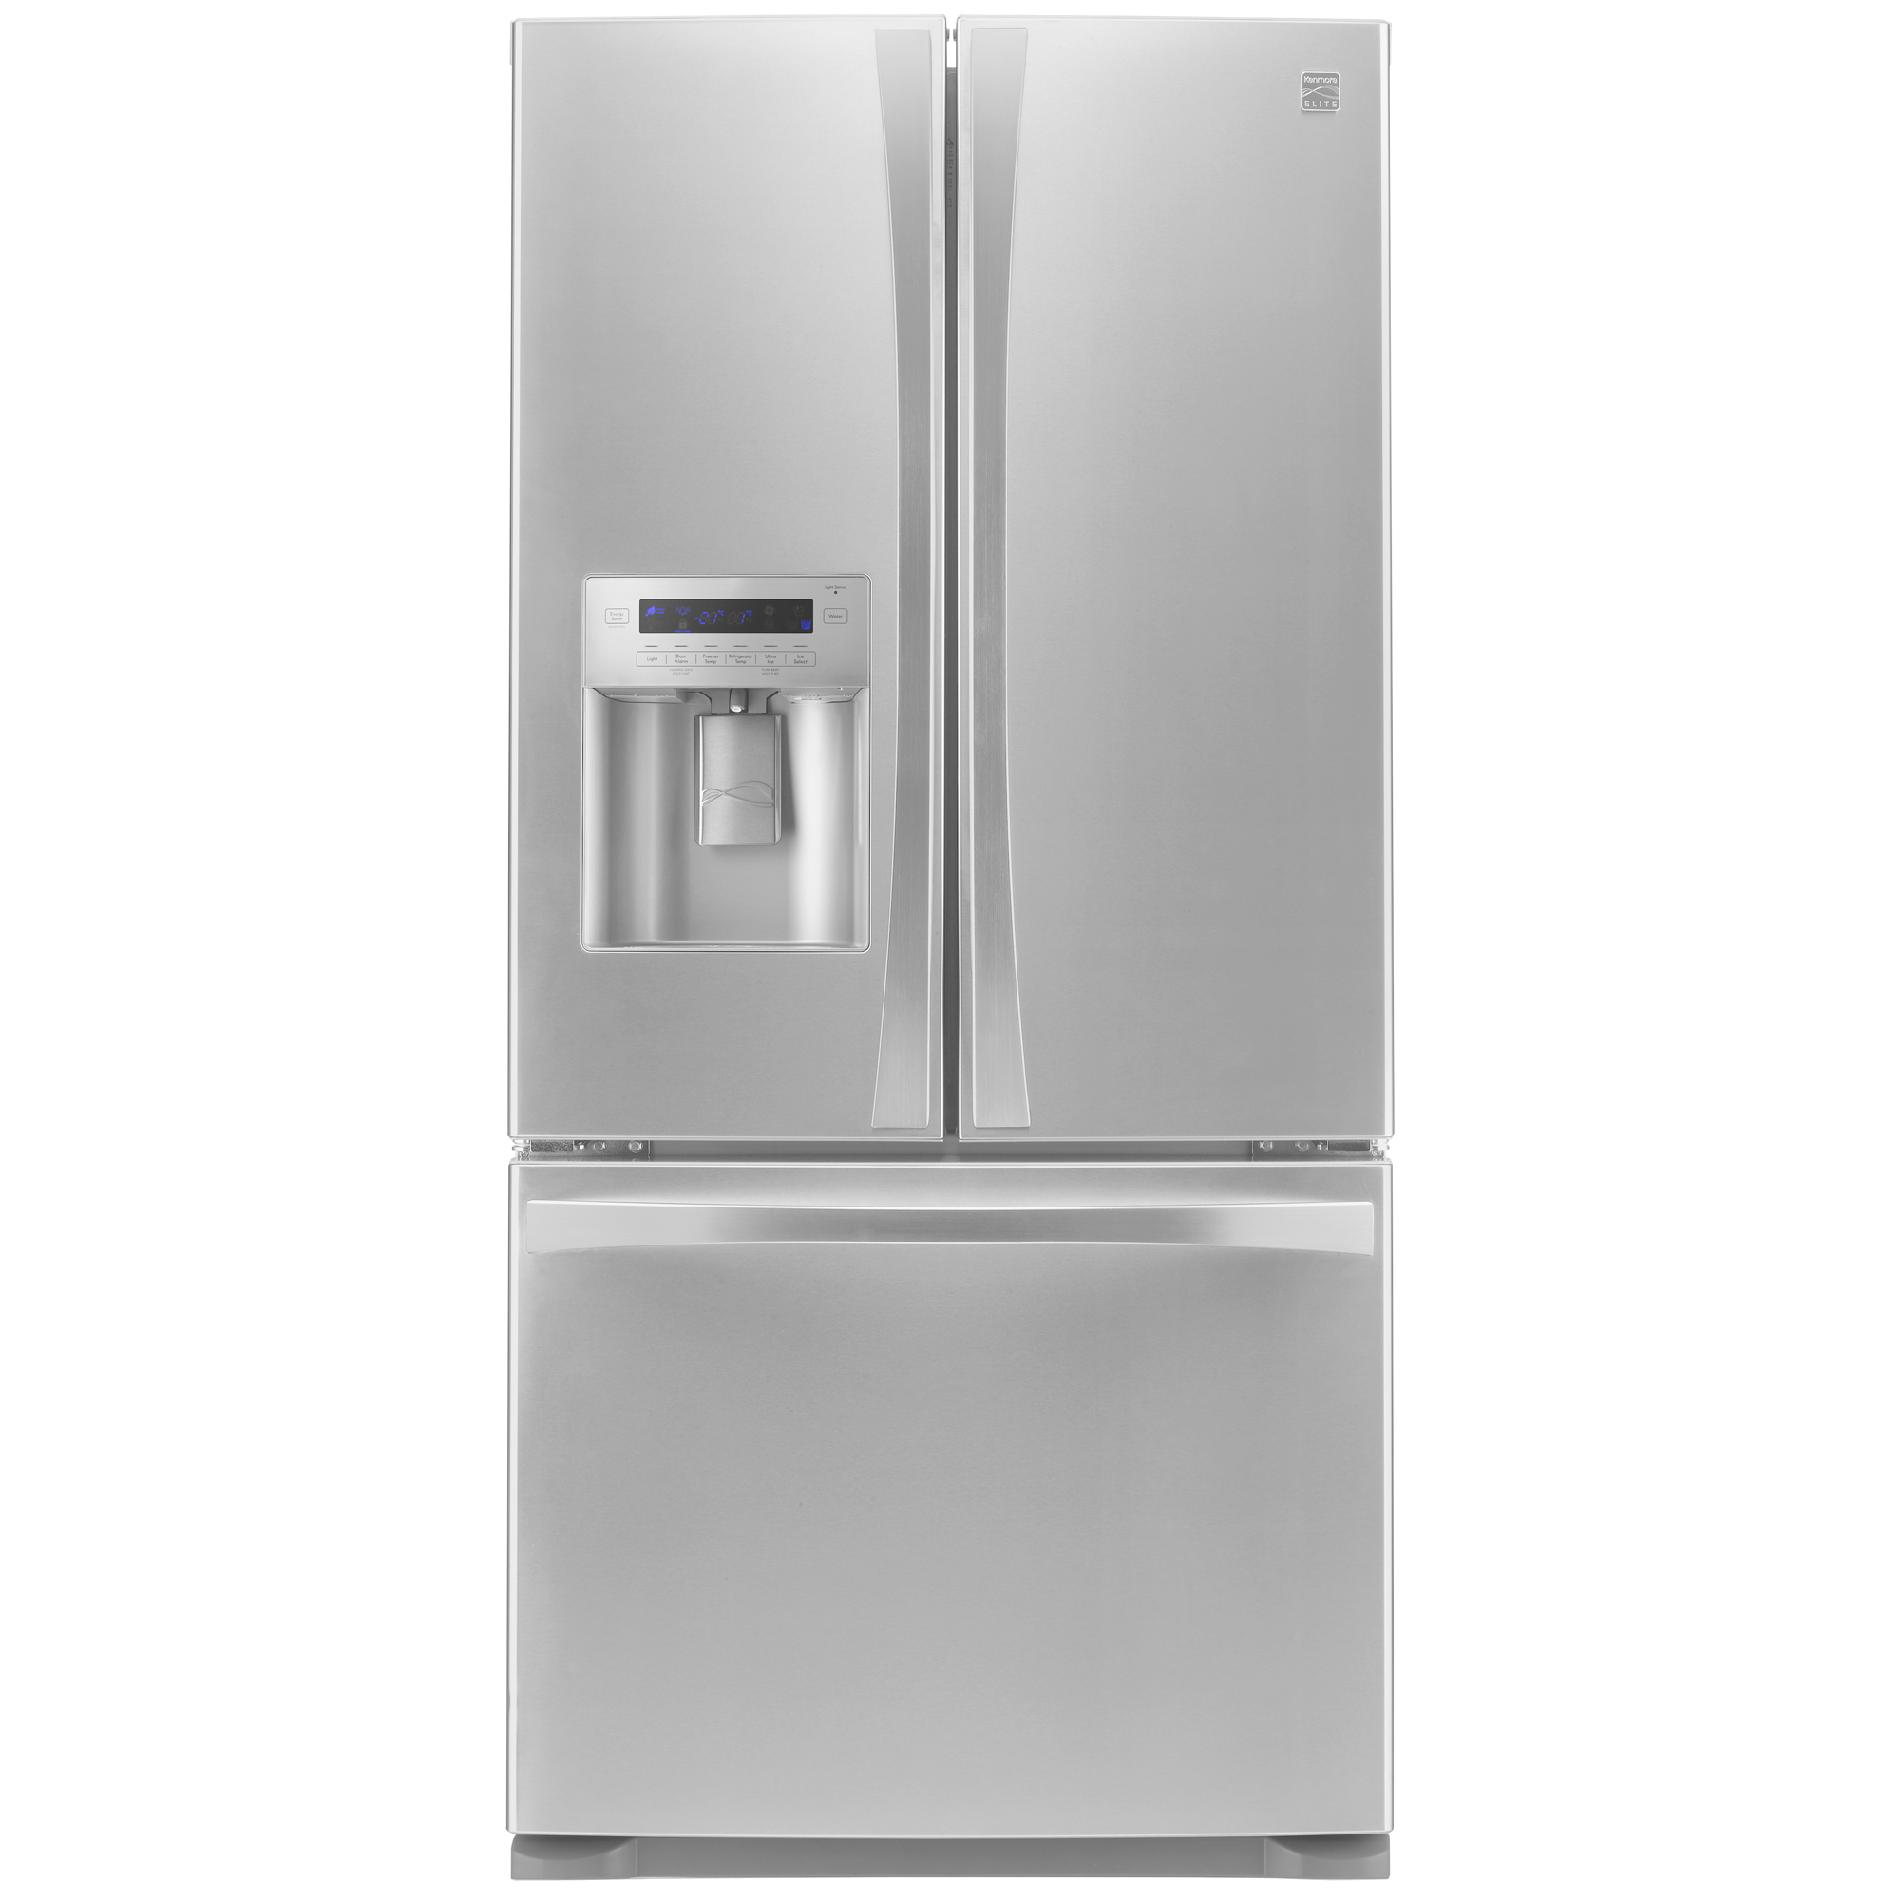 Kenmore Elite 73133 24.2 cu. ft. French Door Bottom-Freezer Refrigerator